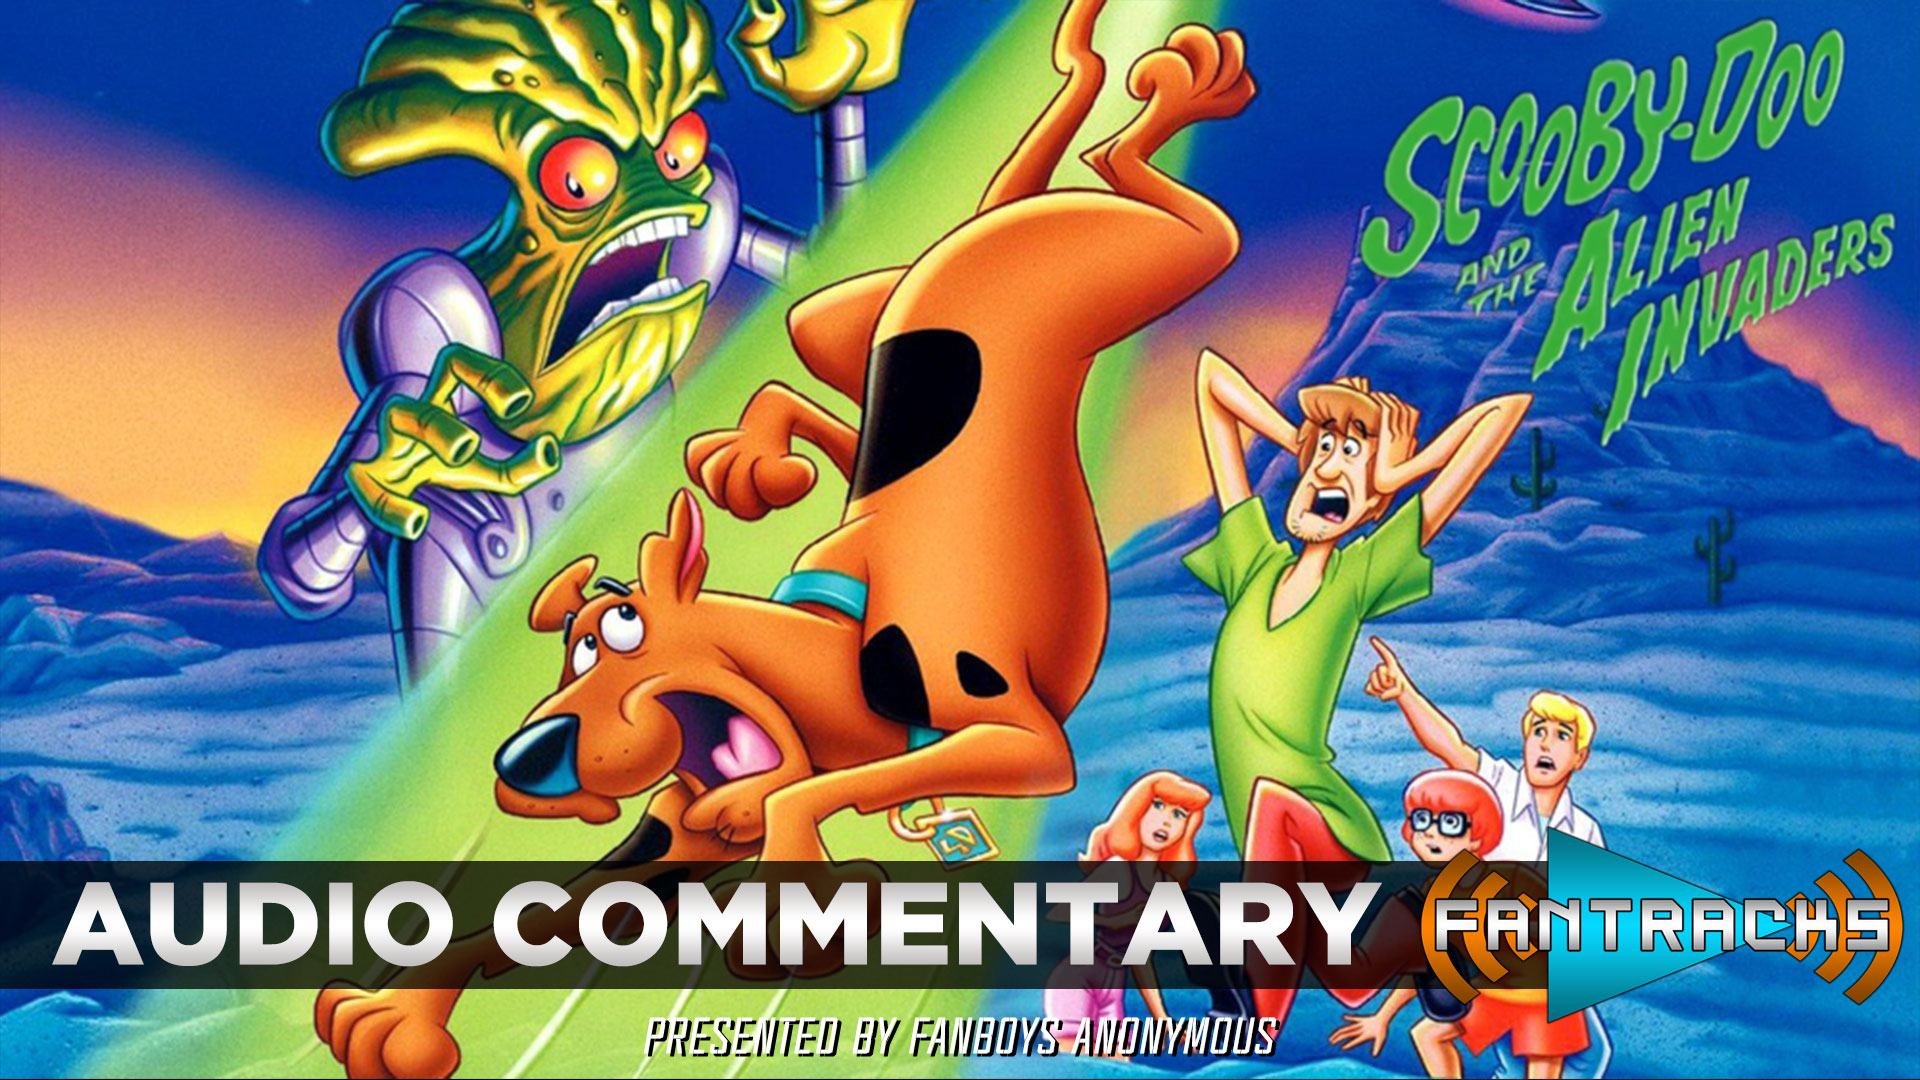 FanTracks Scooby-Doo and the Alien Invaders audio commentary